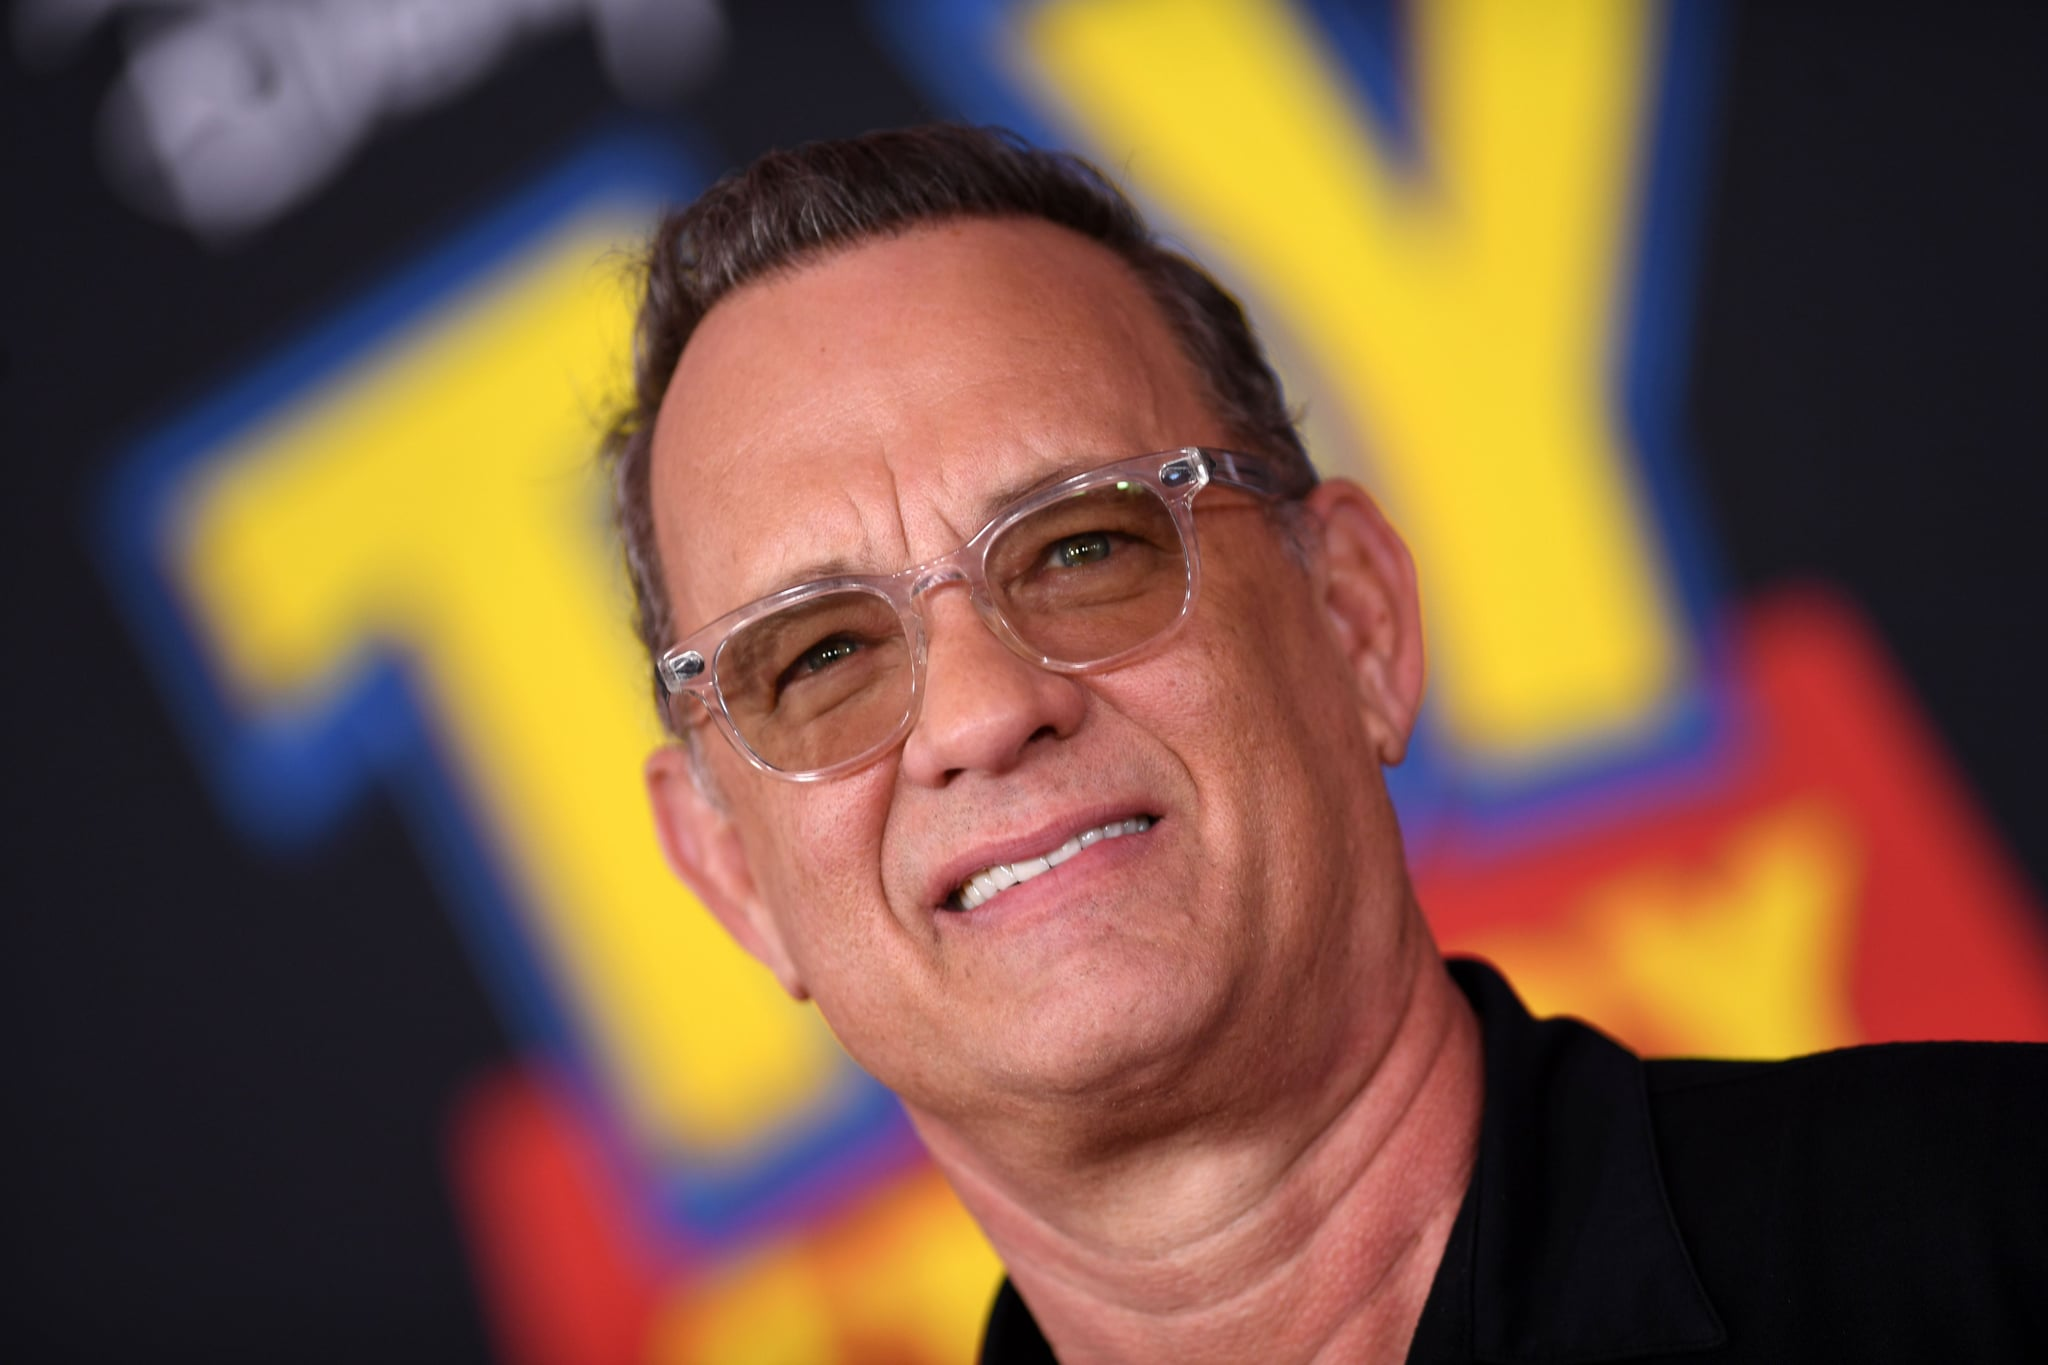 US actor Tom Hanks arrives for the world premiere of